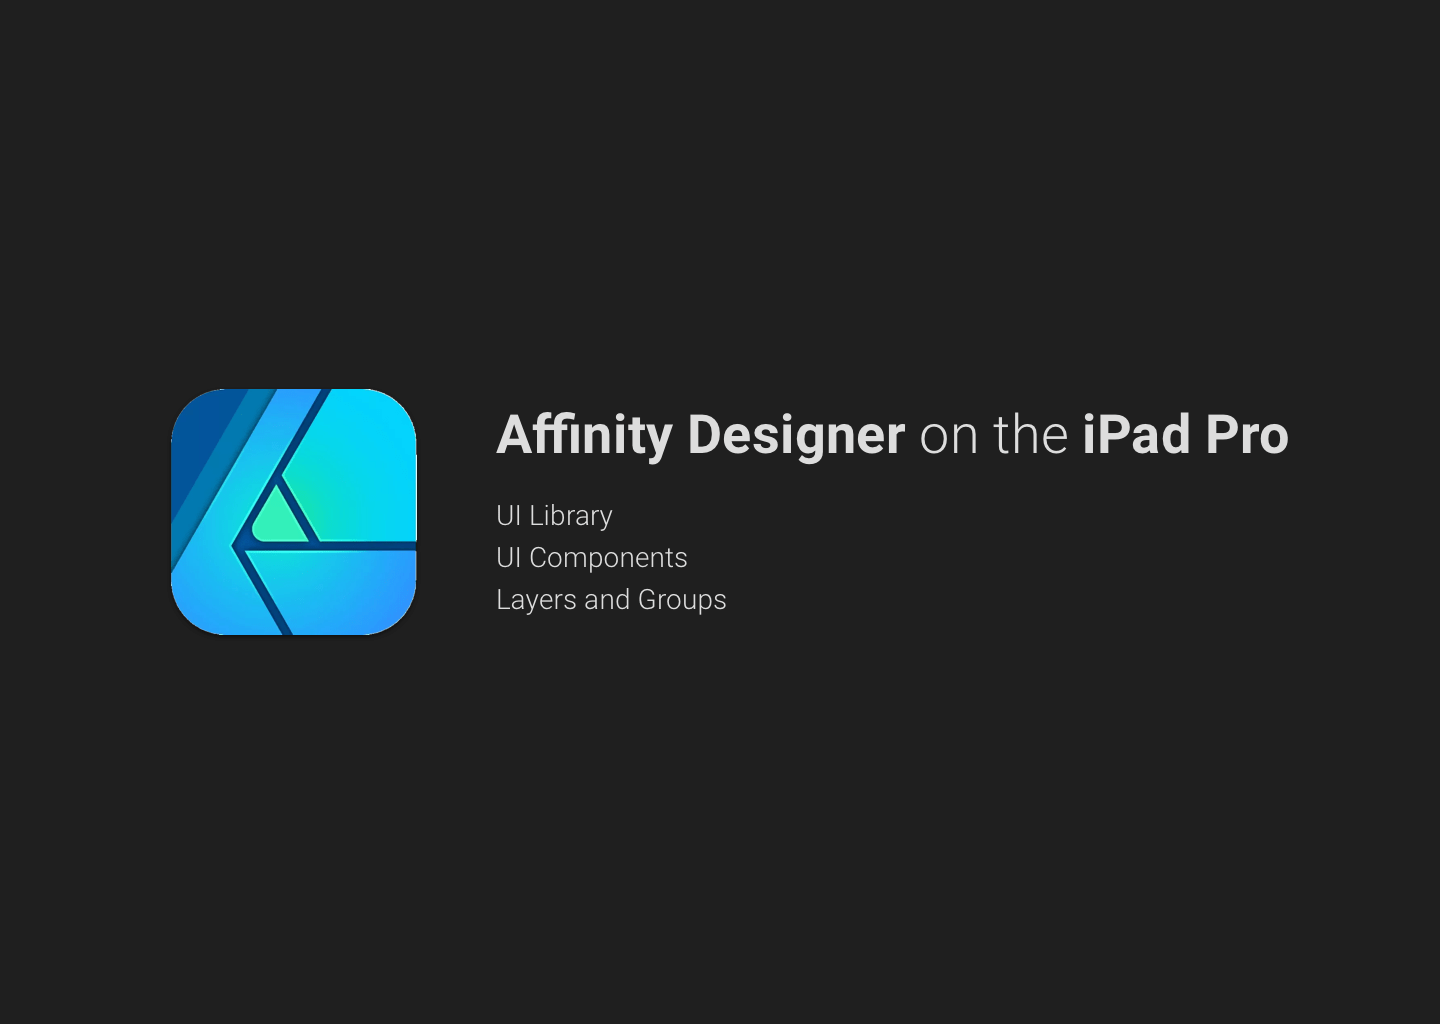 How Good is Affinity Designer on the iPad Pro for UX/UI Design? A Review